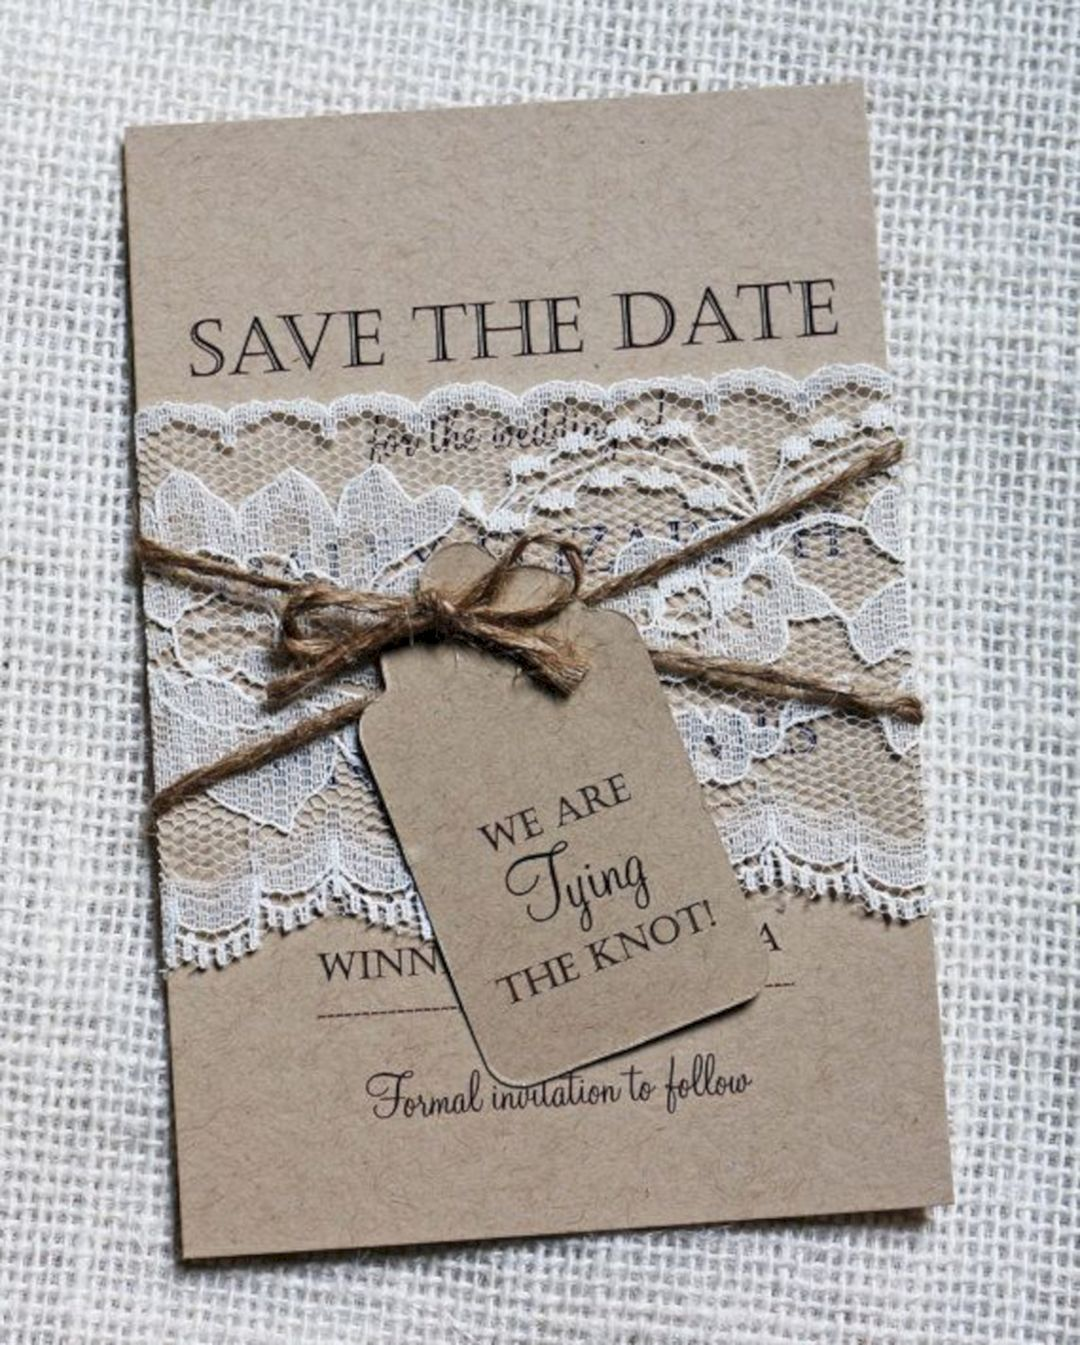 Unique rustic save the date ideas to inspire you wedding ideas